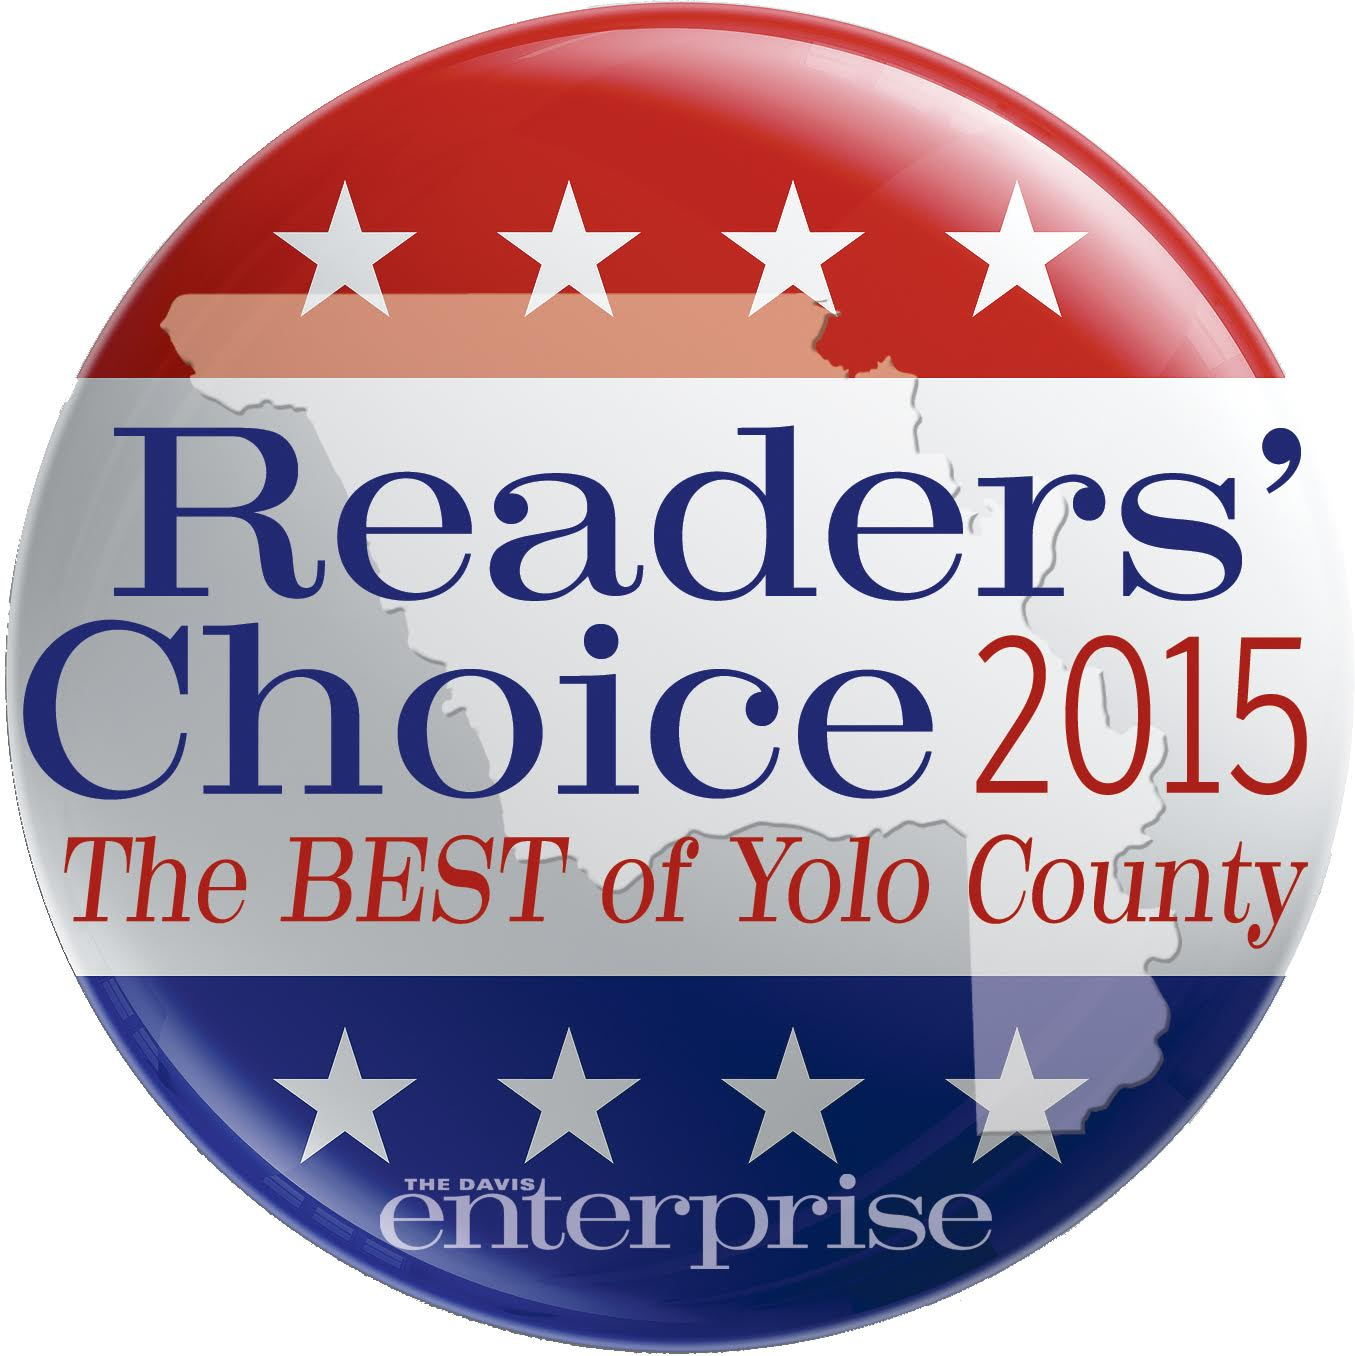 The Best of Yolo County 2015